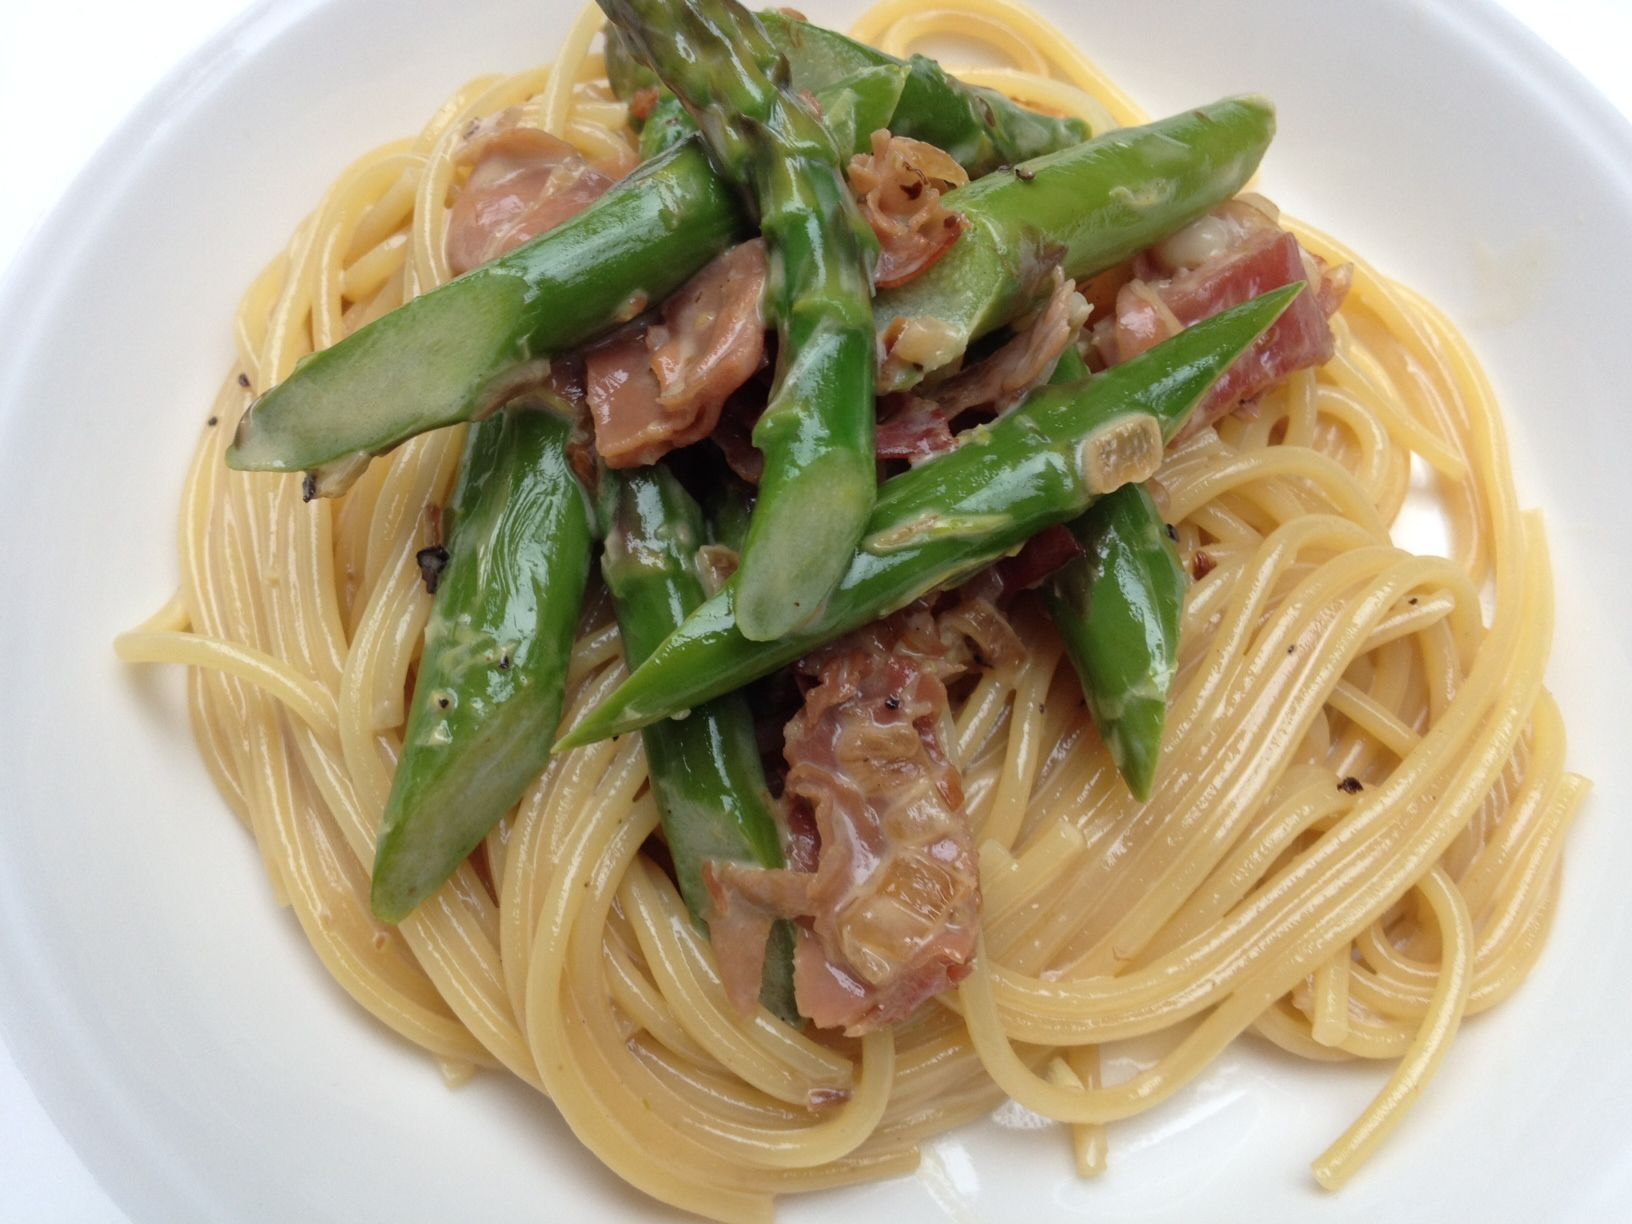 Creamy Pasta with Asparagus and Prosciutto